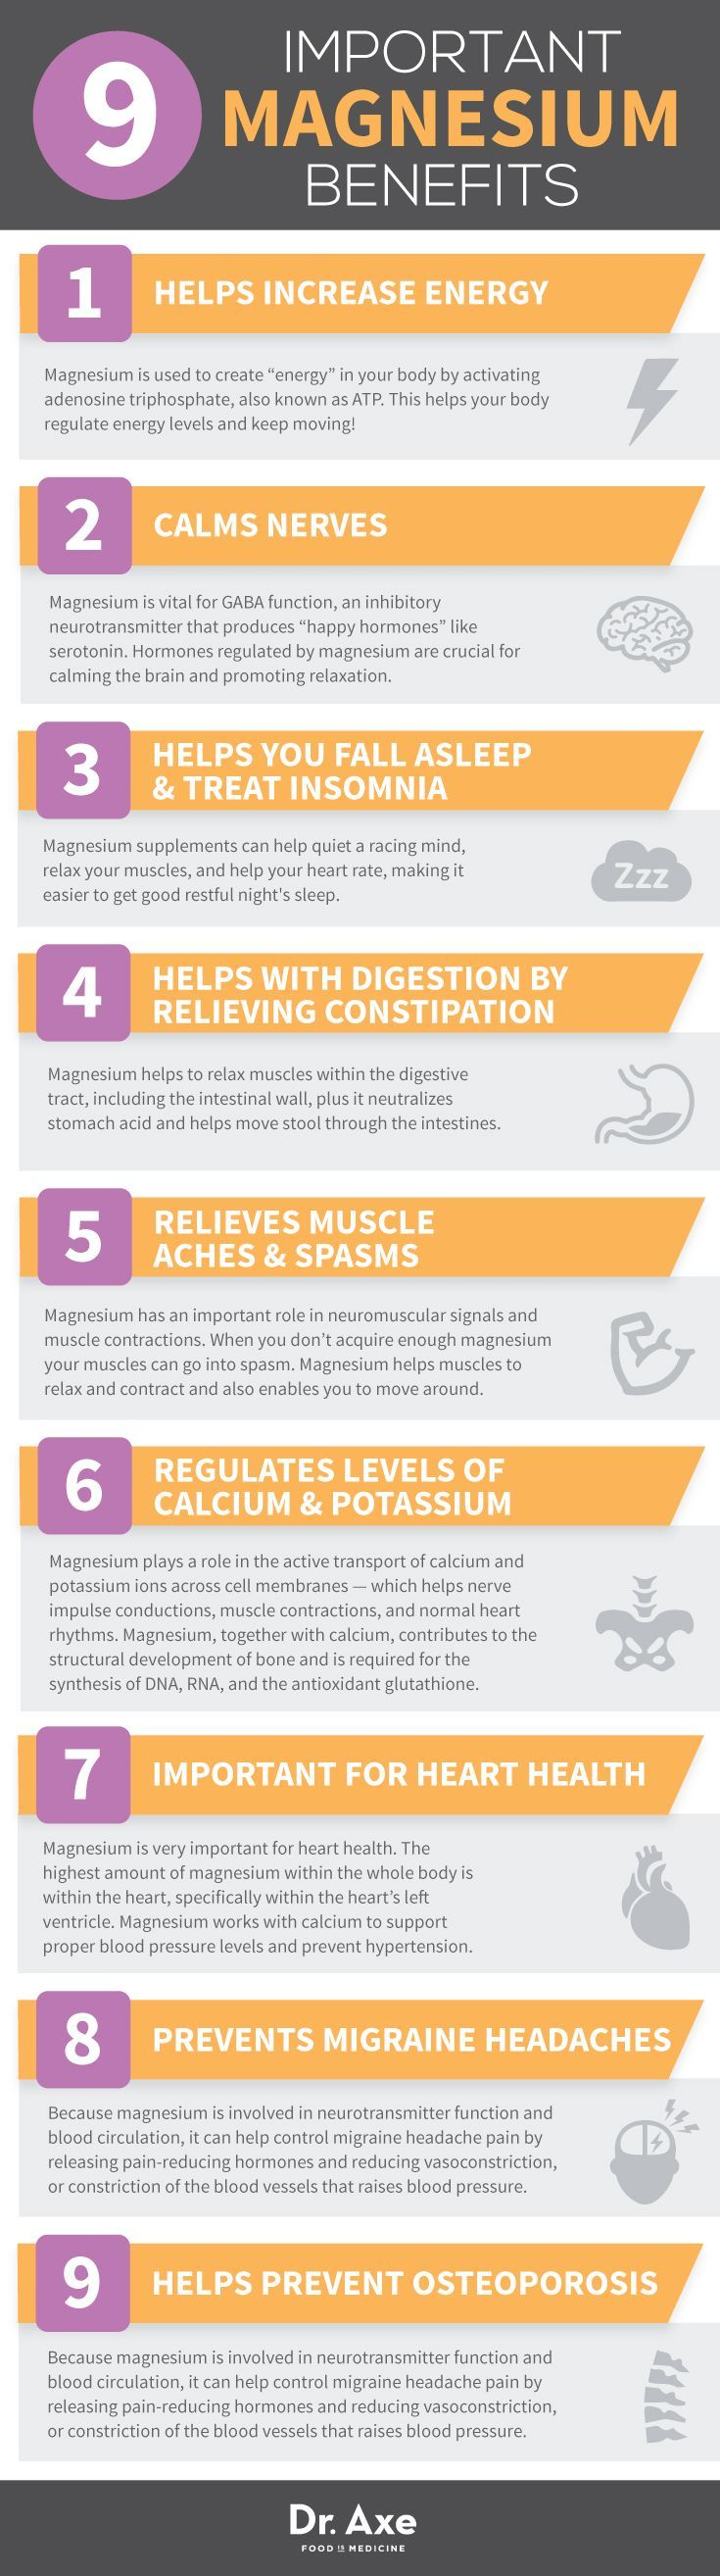 THE BEST SUPPLEMENT TO ENHANCE PERFORMANCE! Magnesium Benefits www.draxe.com #health #holistic #natural